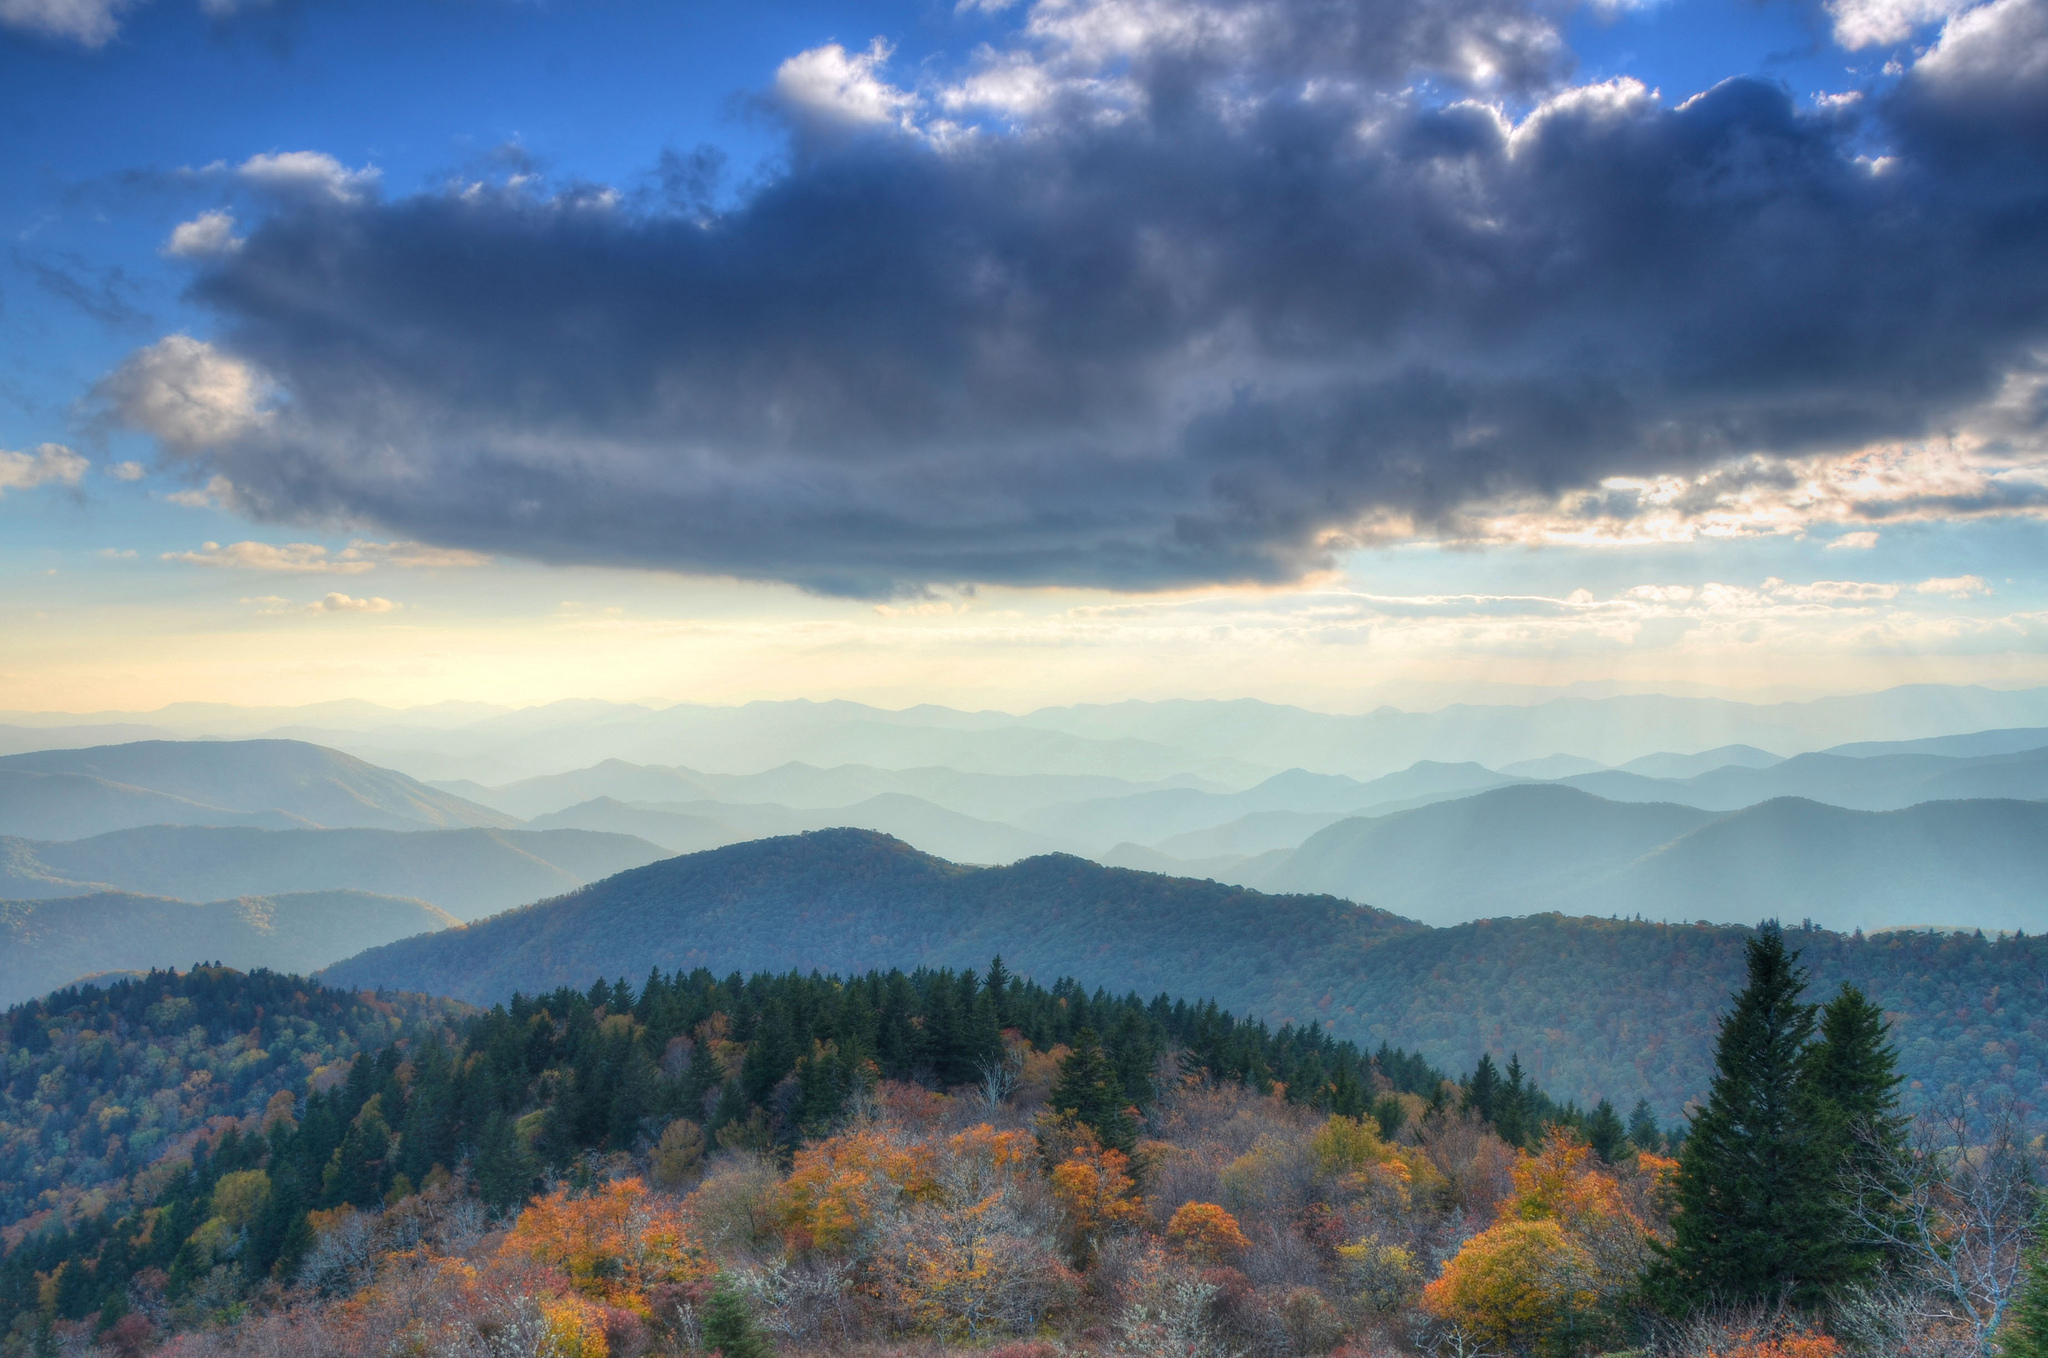 Cowee Mountain Overlook, Blue Ridge Parkway | © Mary Anne Baker/Flickr